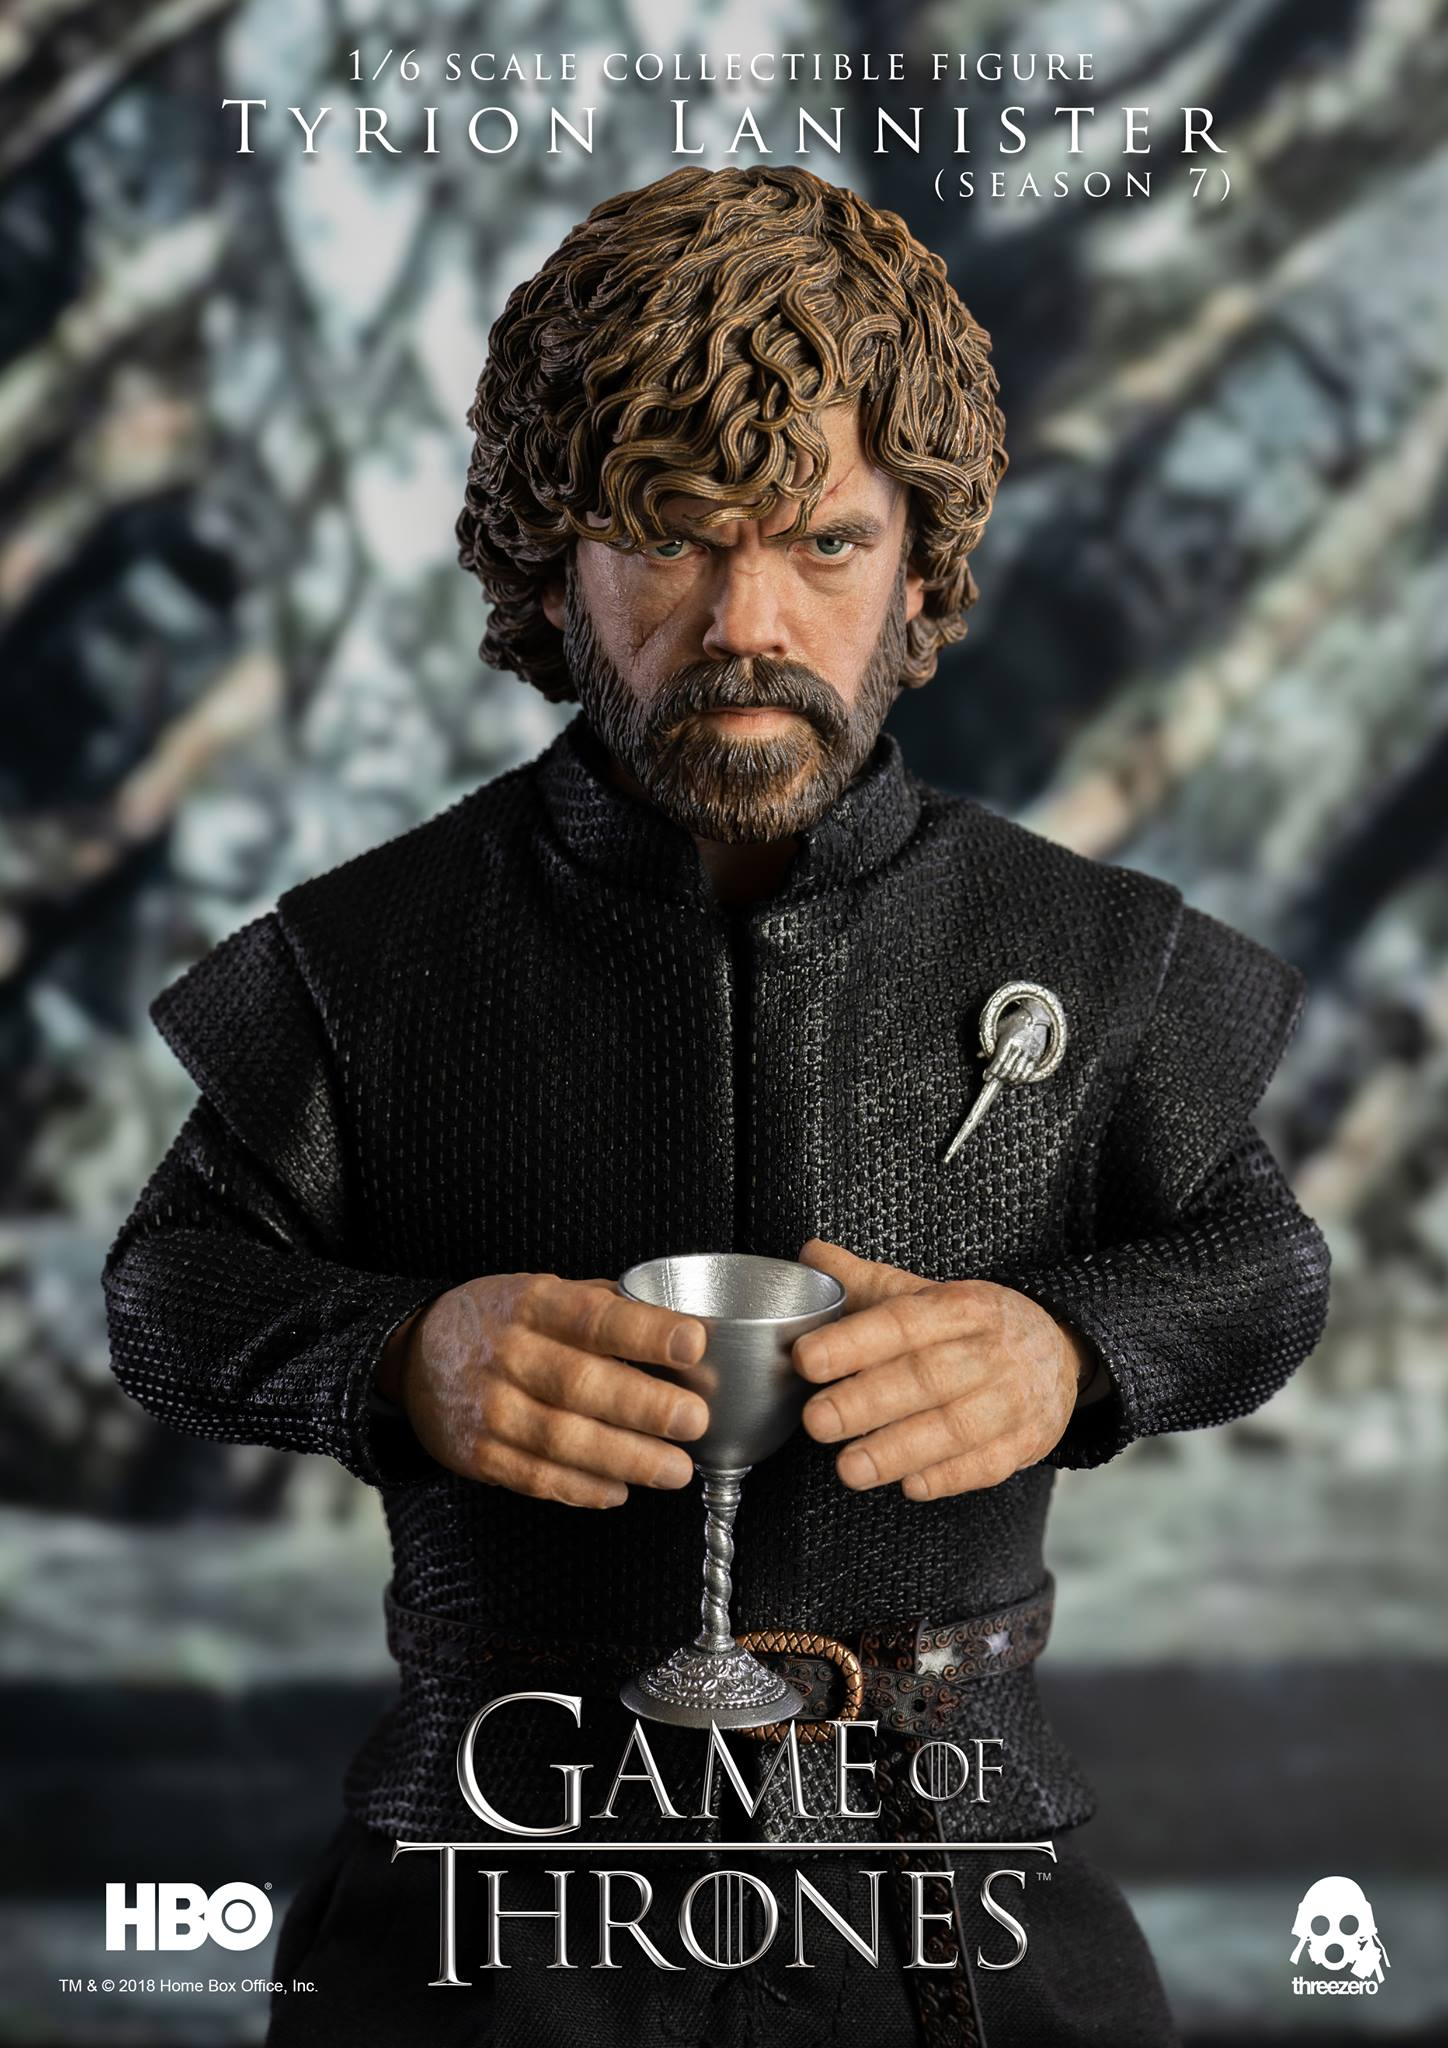 Photos and Info for the Game of Thrones Season 7 – Tyrion ...